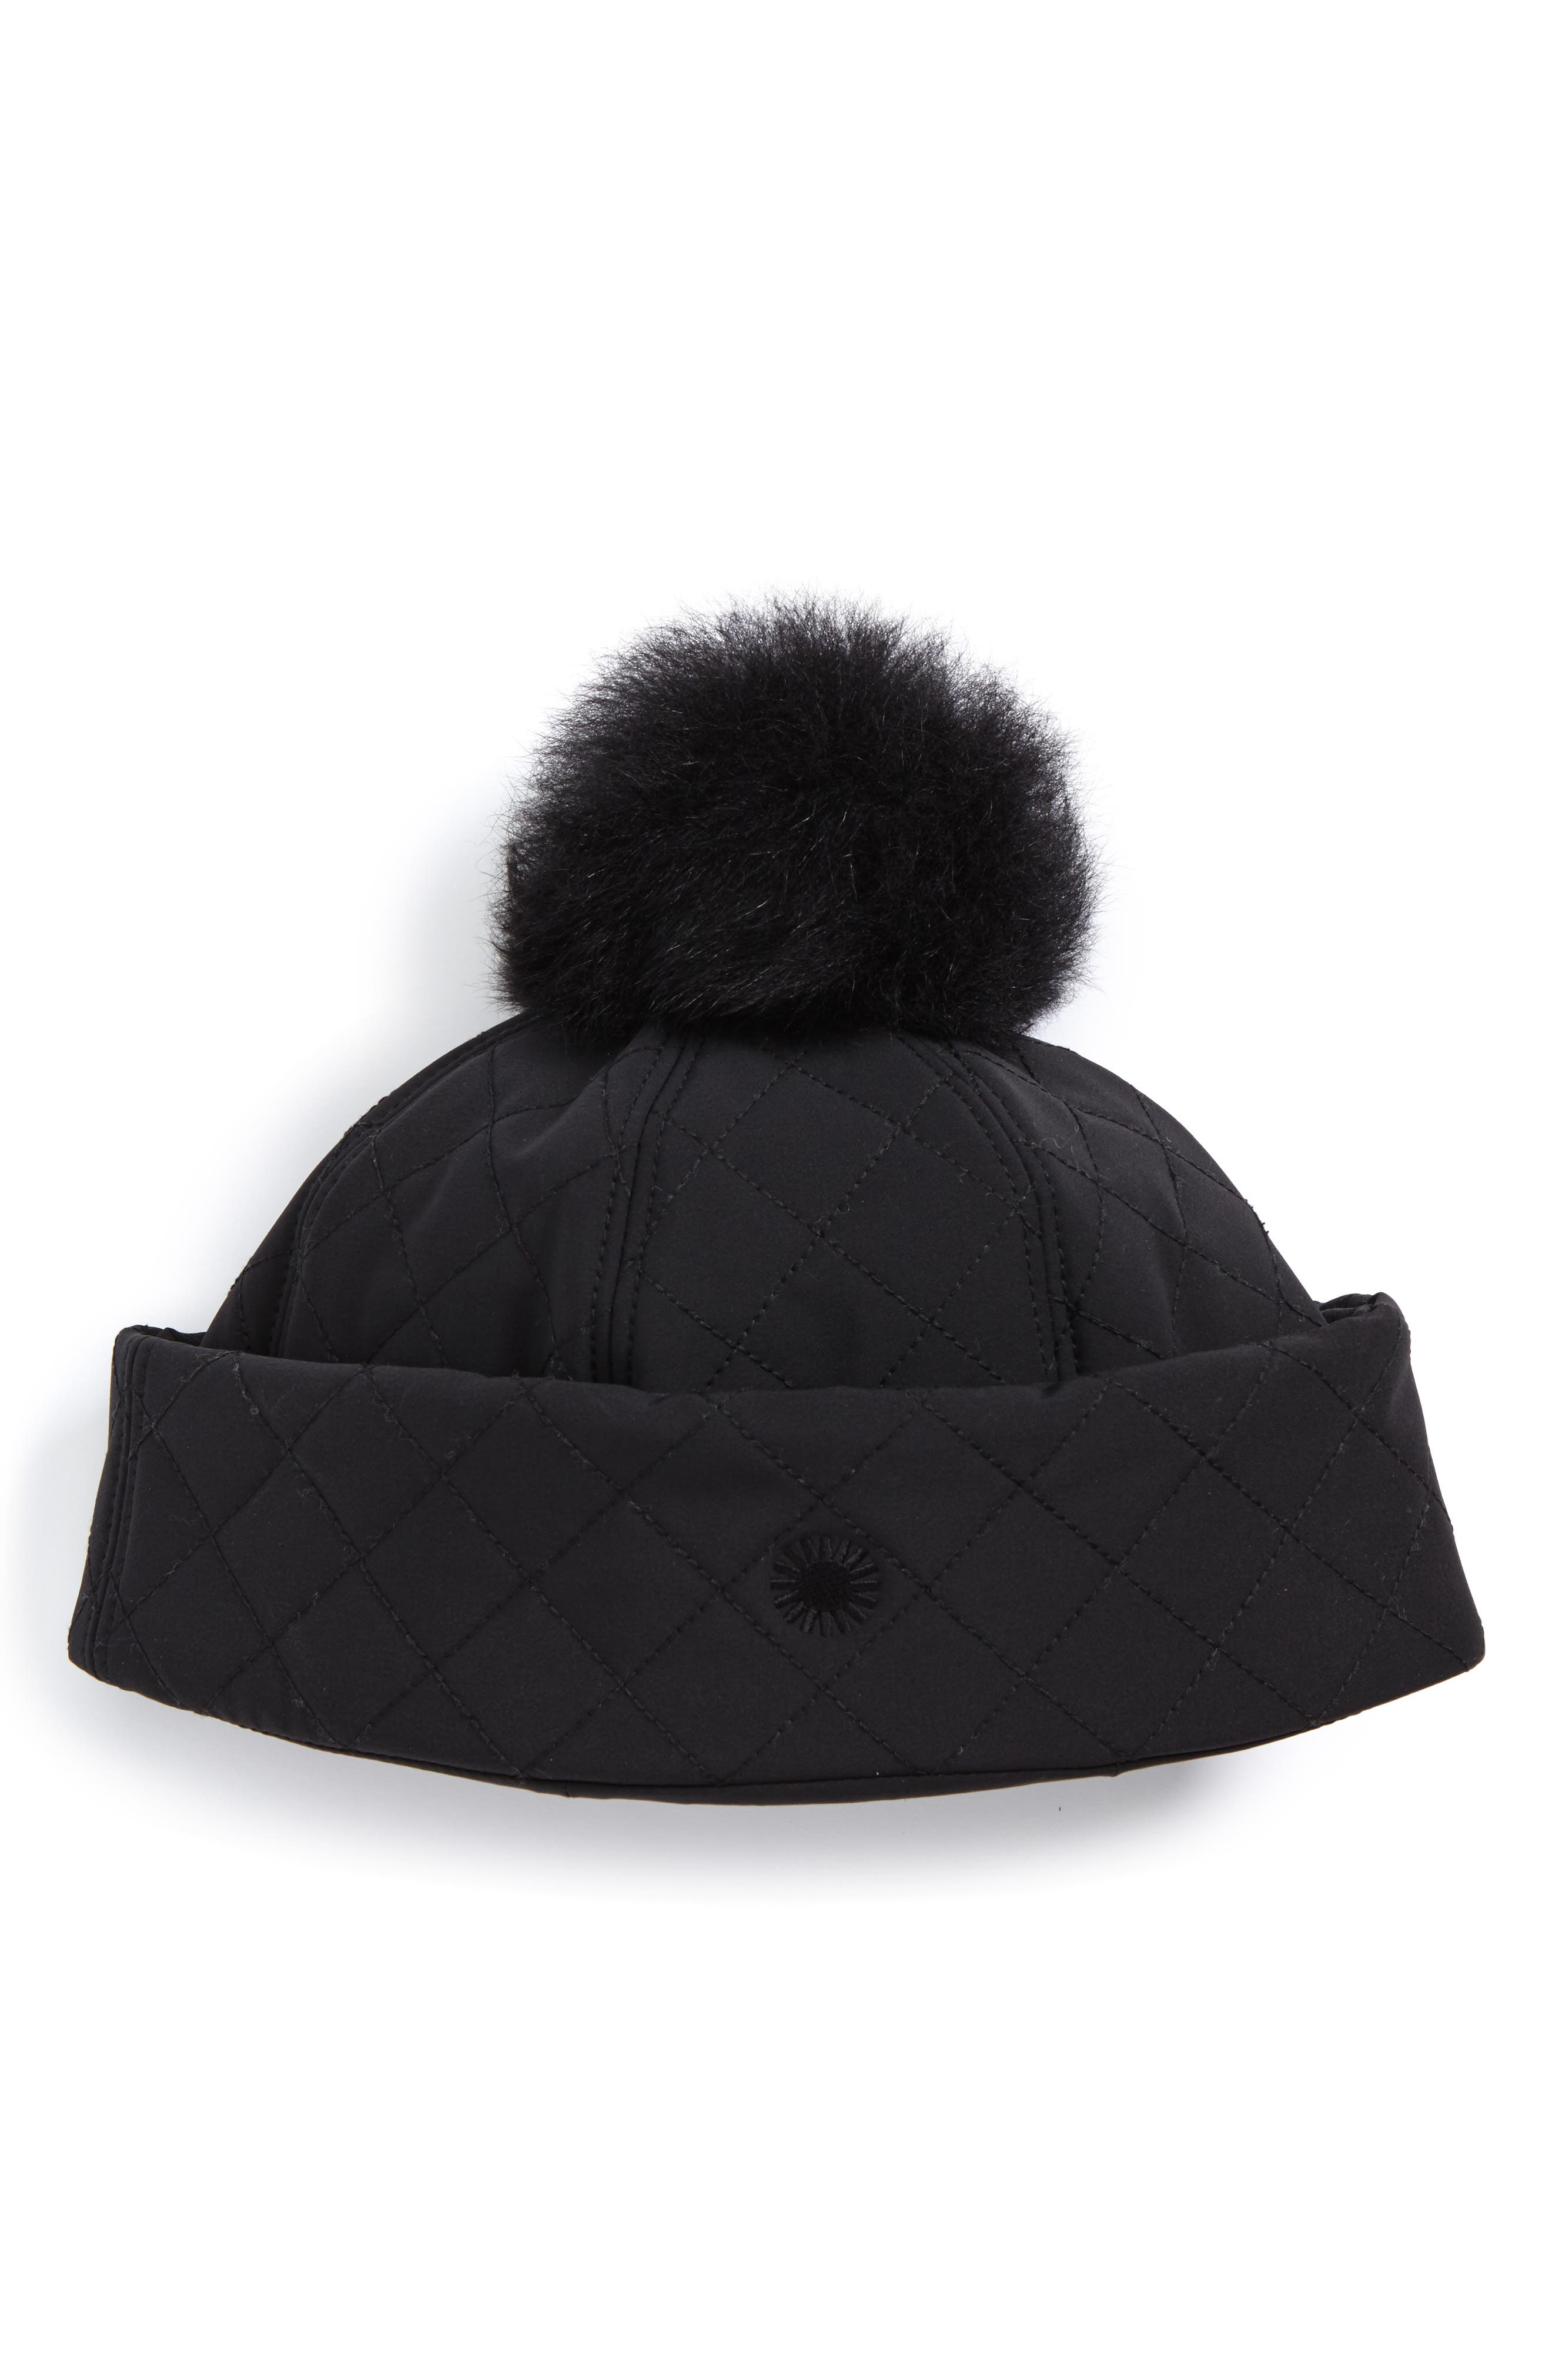 Australia Water ResistantQuilted Hat with Genuine ShearlingPompom,                             Alternate thumbnail 2, color,                             BLACK